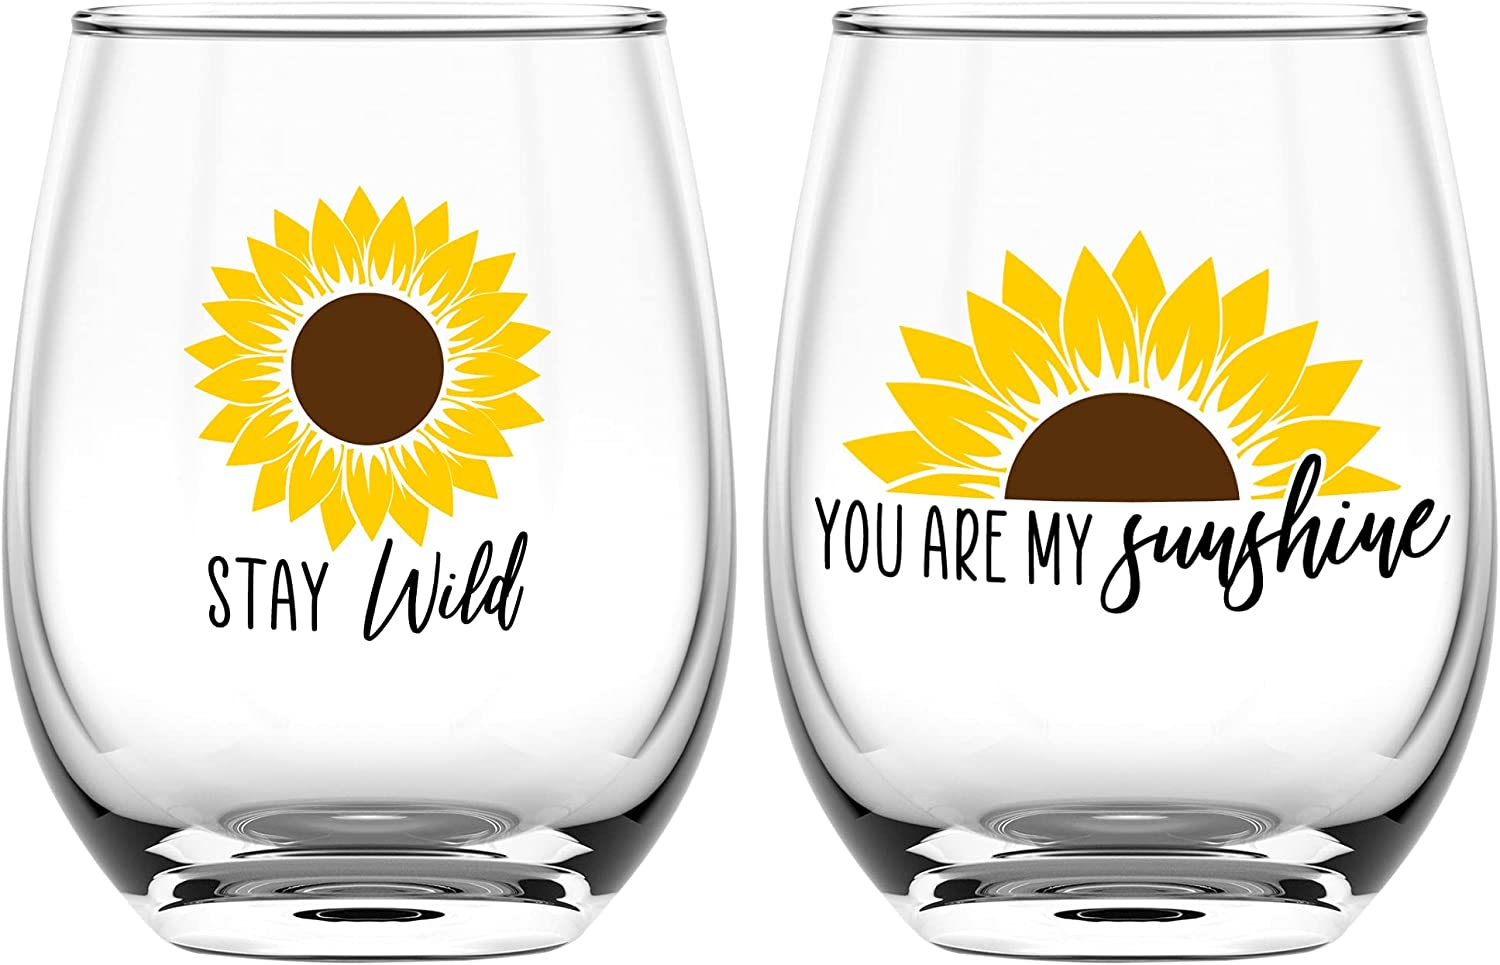 Sunflower Wine Glasses Set of 2 - You Are My Sunshine - Sunflowers Gifts for Women and Kitchen Decor Accessories - Wine Tumbler Cup Glass Set - Sunflower Gift for House - 17 Oz by On the Rox Drinks